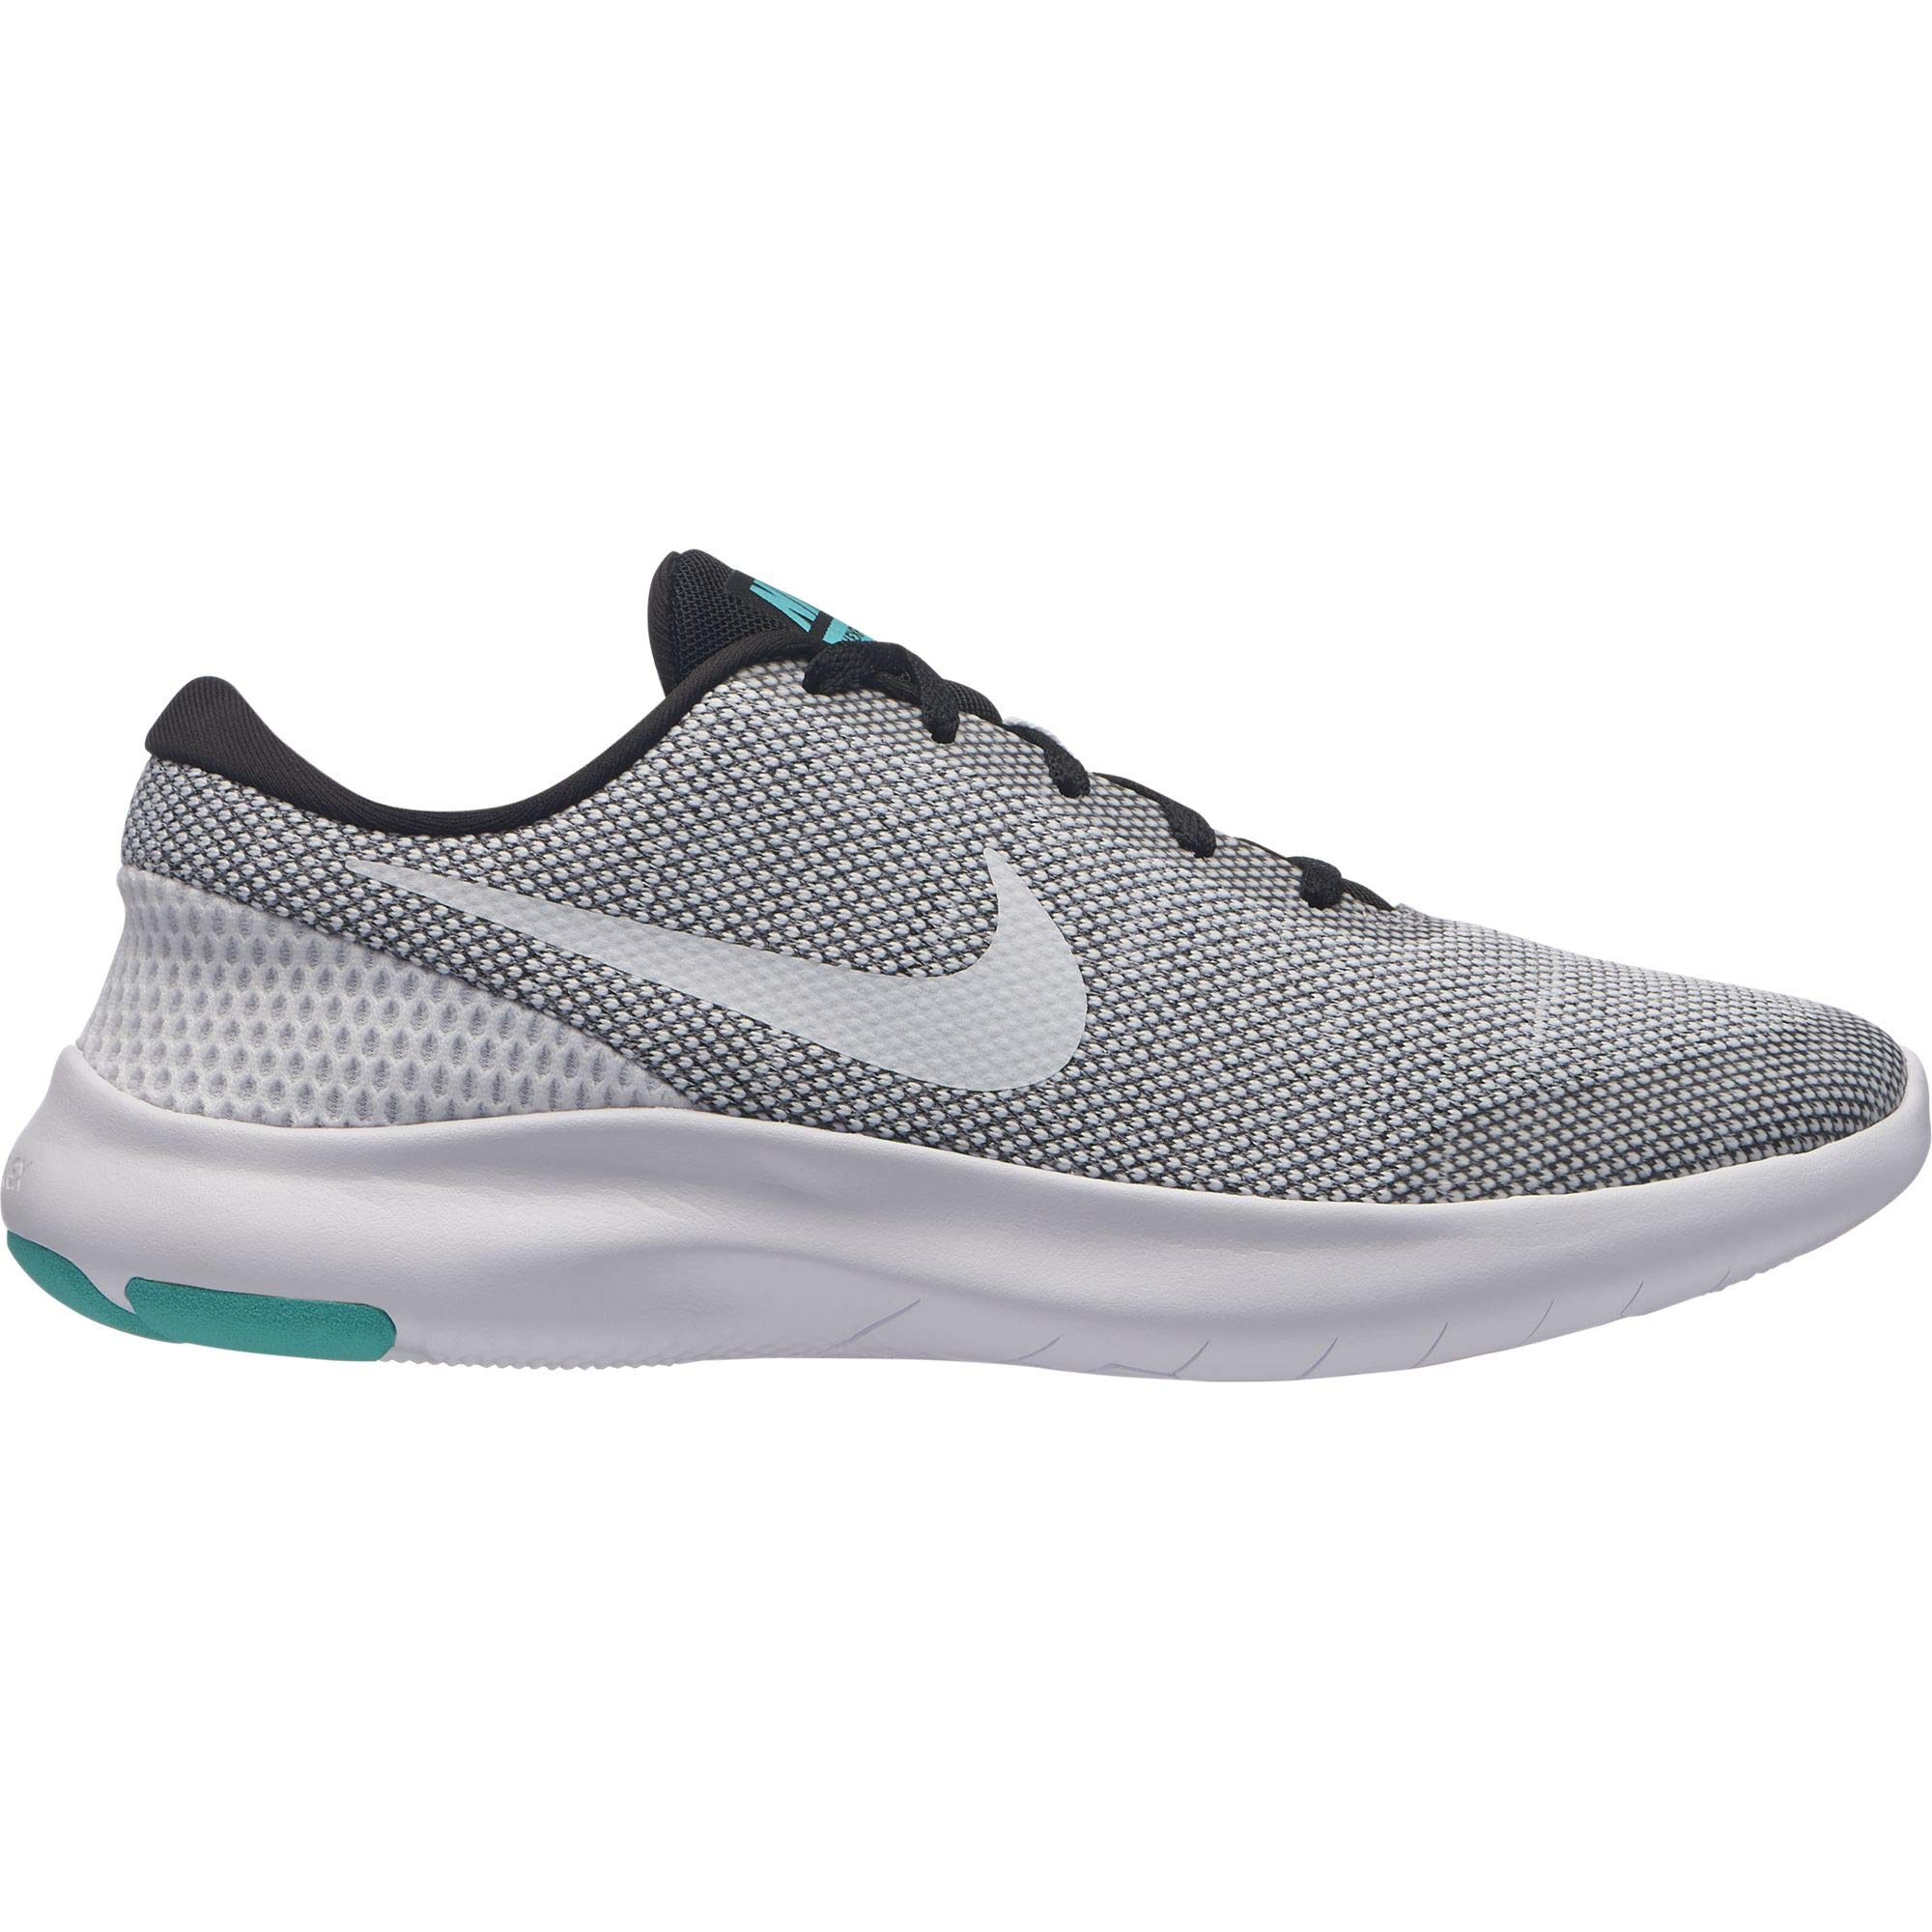 huge selection of f27d2 228f6 Galleon - Nike Women s Flex Experience RN 7 Running Shoes, Black White-Hyper  Jade, 7.5